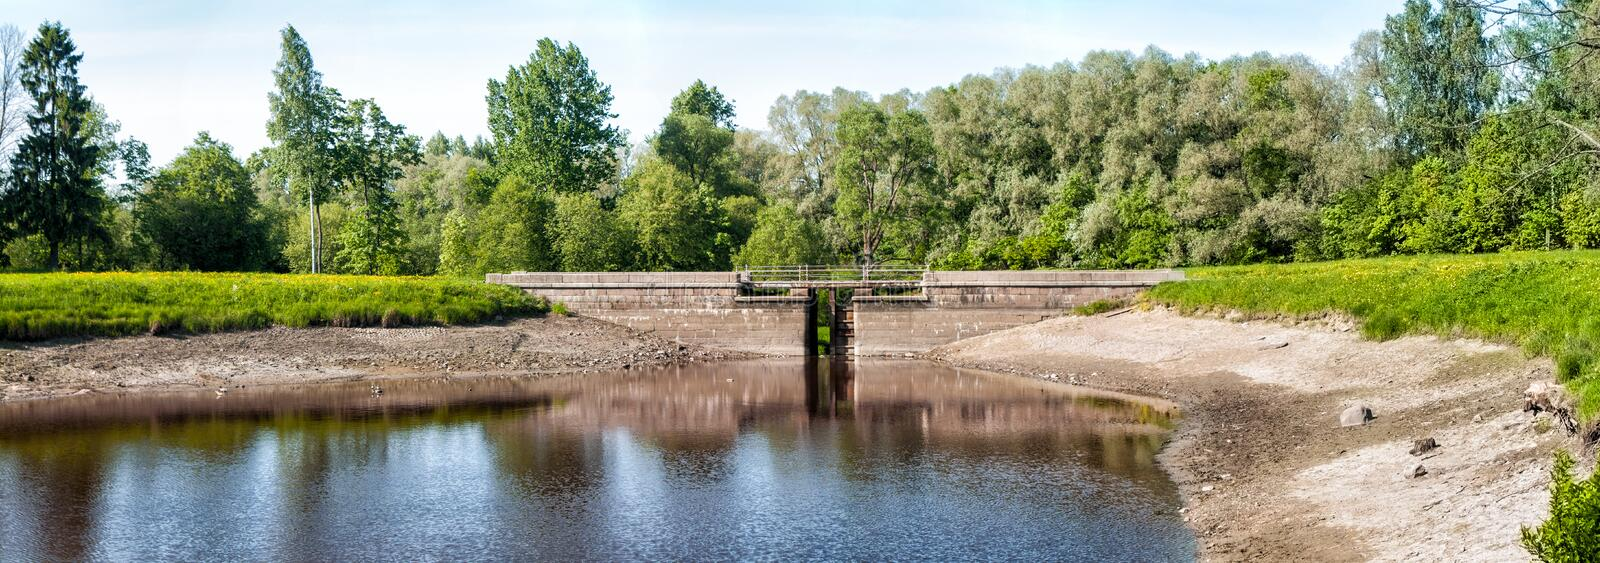 Pedestrian bridge on the pond in the park in early spring in clear weather royalty free stock photo